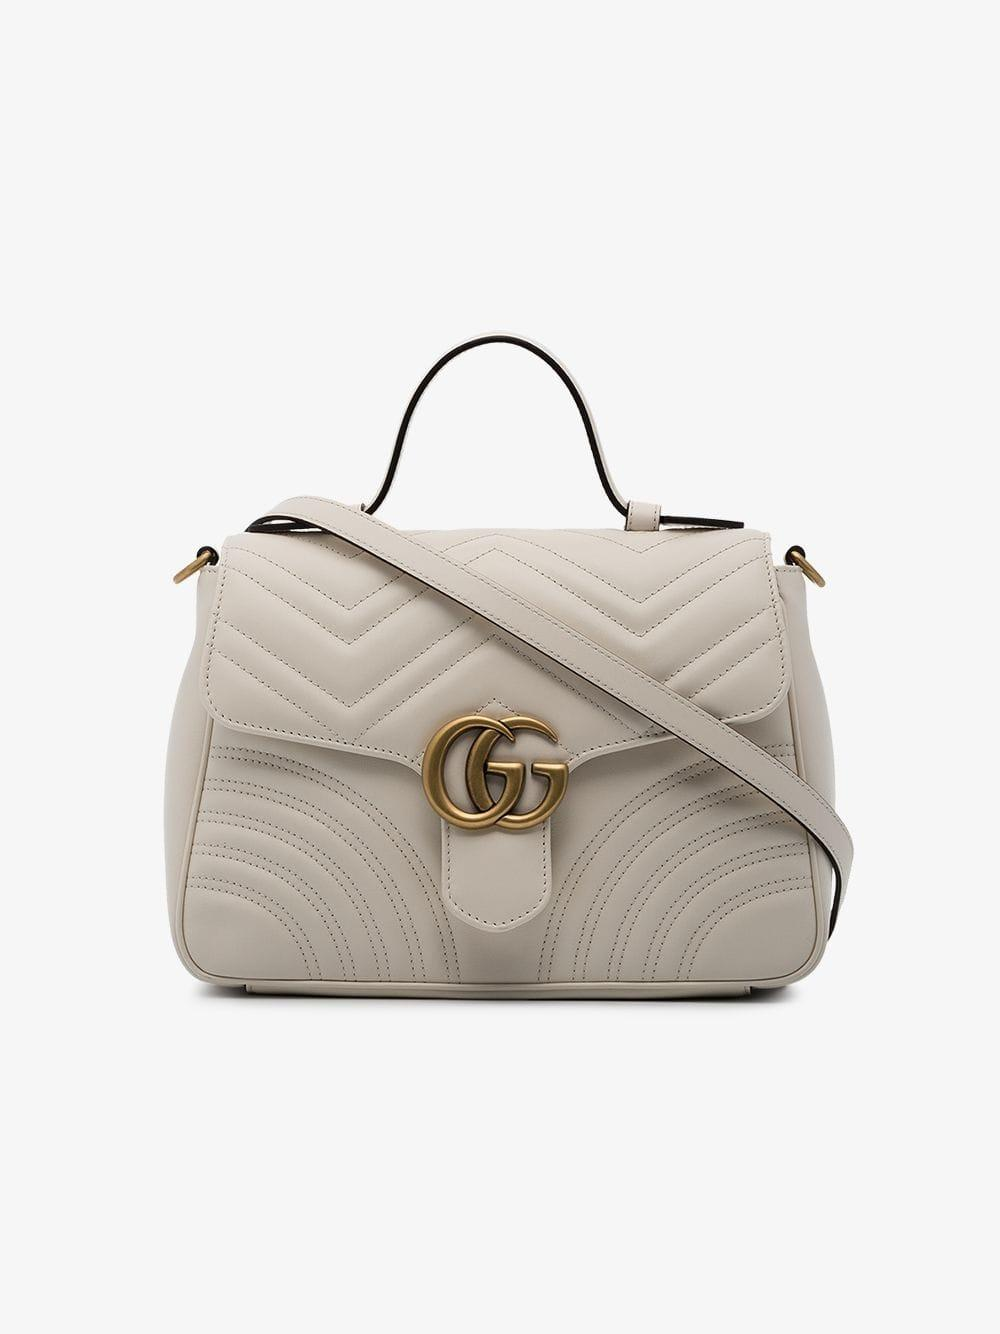 c7015eb958ae Lyst - Gucci Gg Marmont Small Top Handle Bag in White